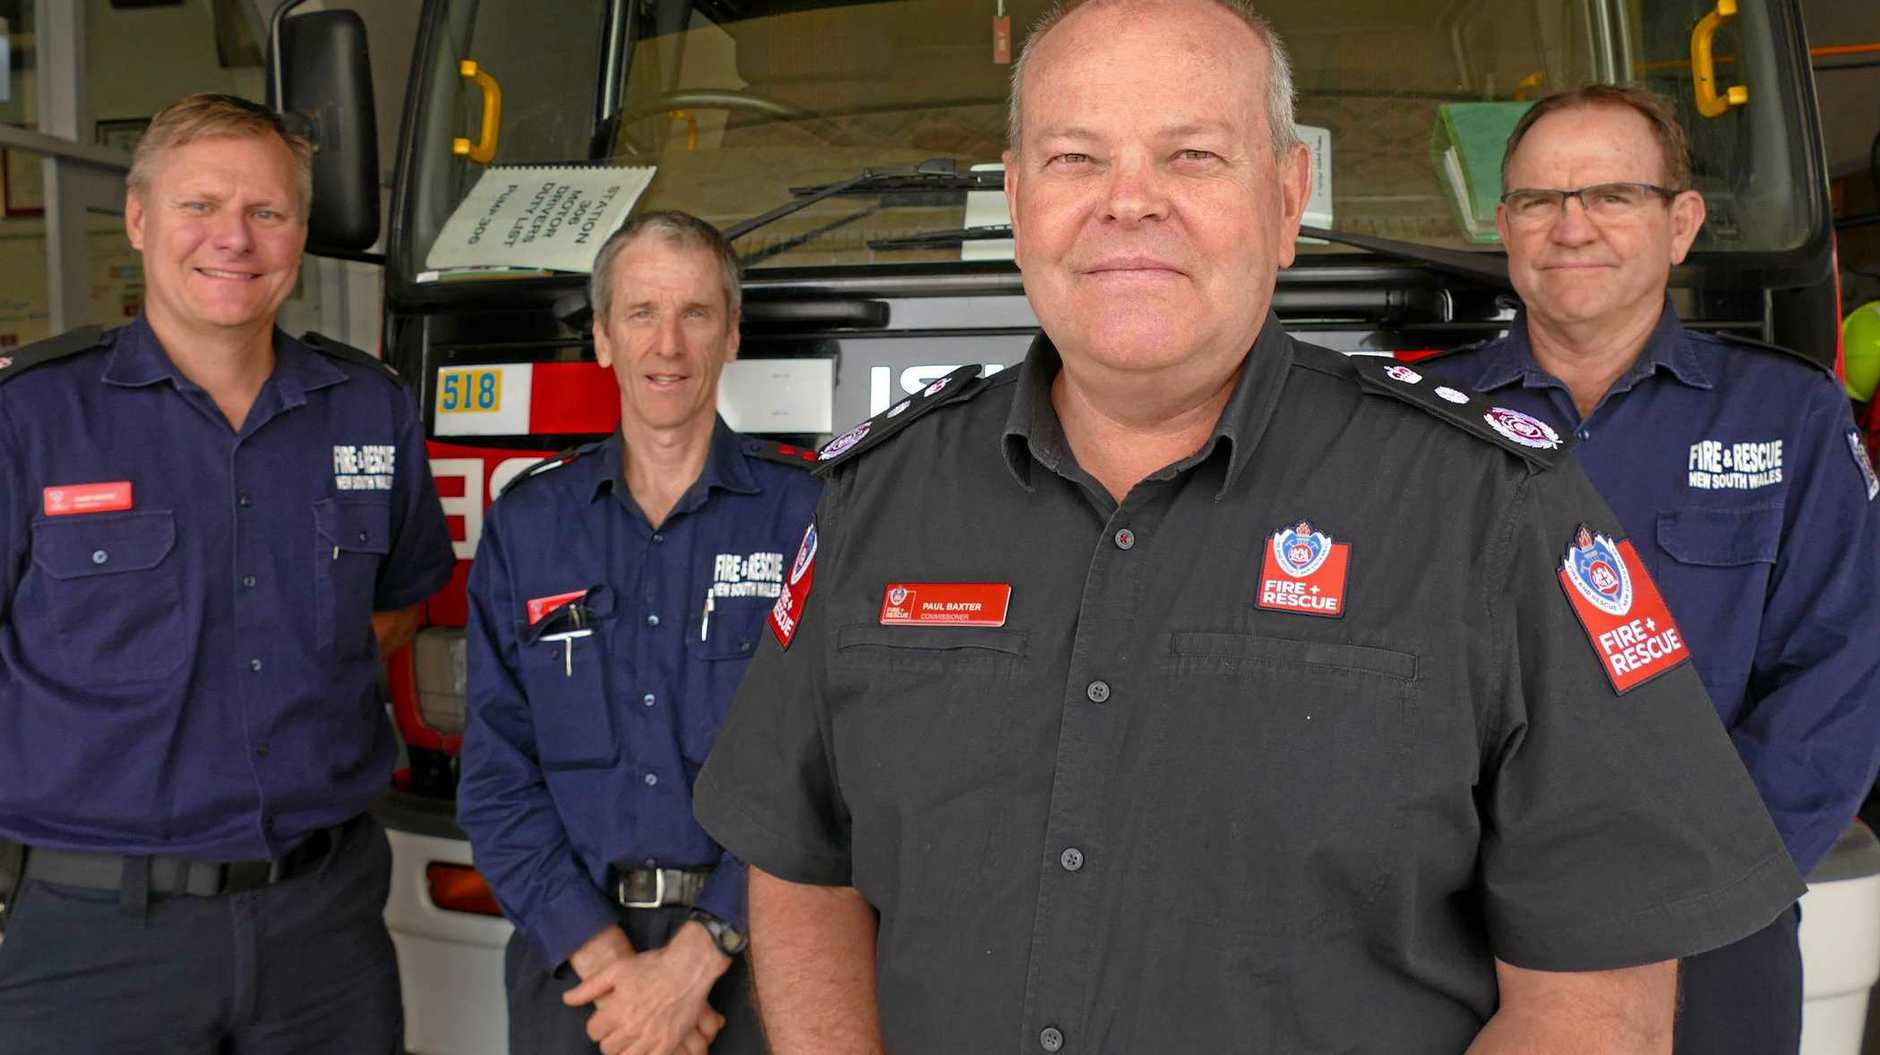 FLEETING VISIT: Fire and Rescue NSW Inspector Gary White, Grafton fire brigade captain Garry Reardon, Fire and Rescue NSW commissioner Paul Baxter and South Grafton brigade captain Paul Danvers at the Grafton Fire Station on Thursday.